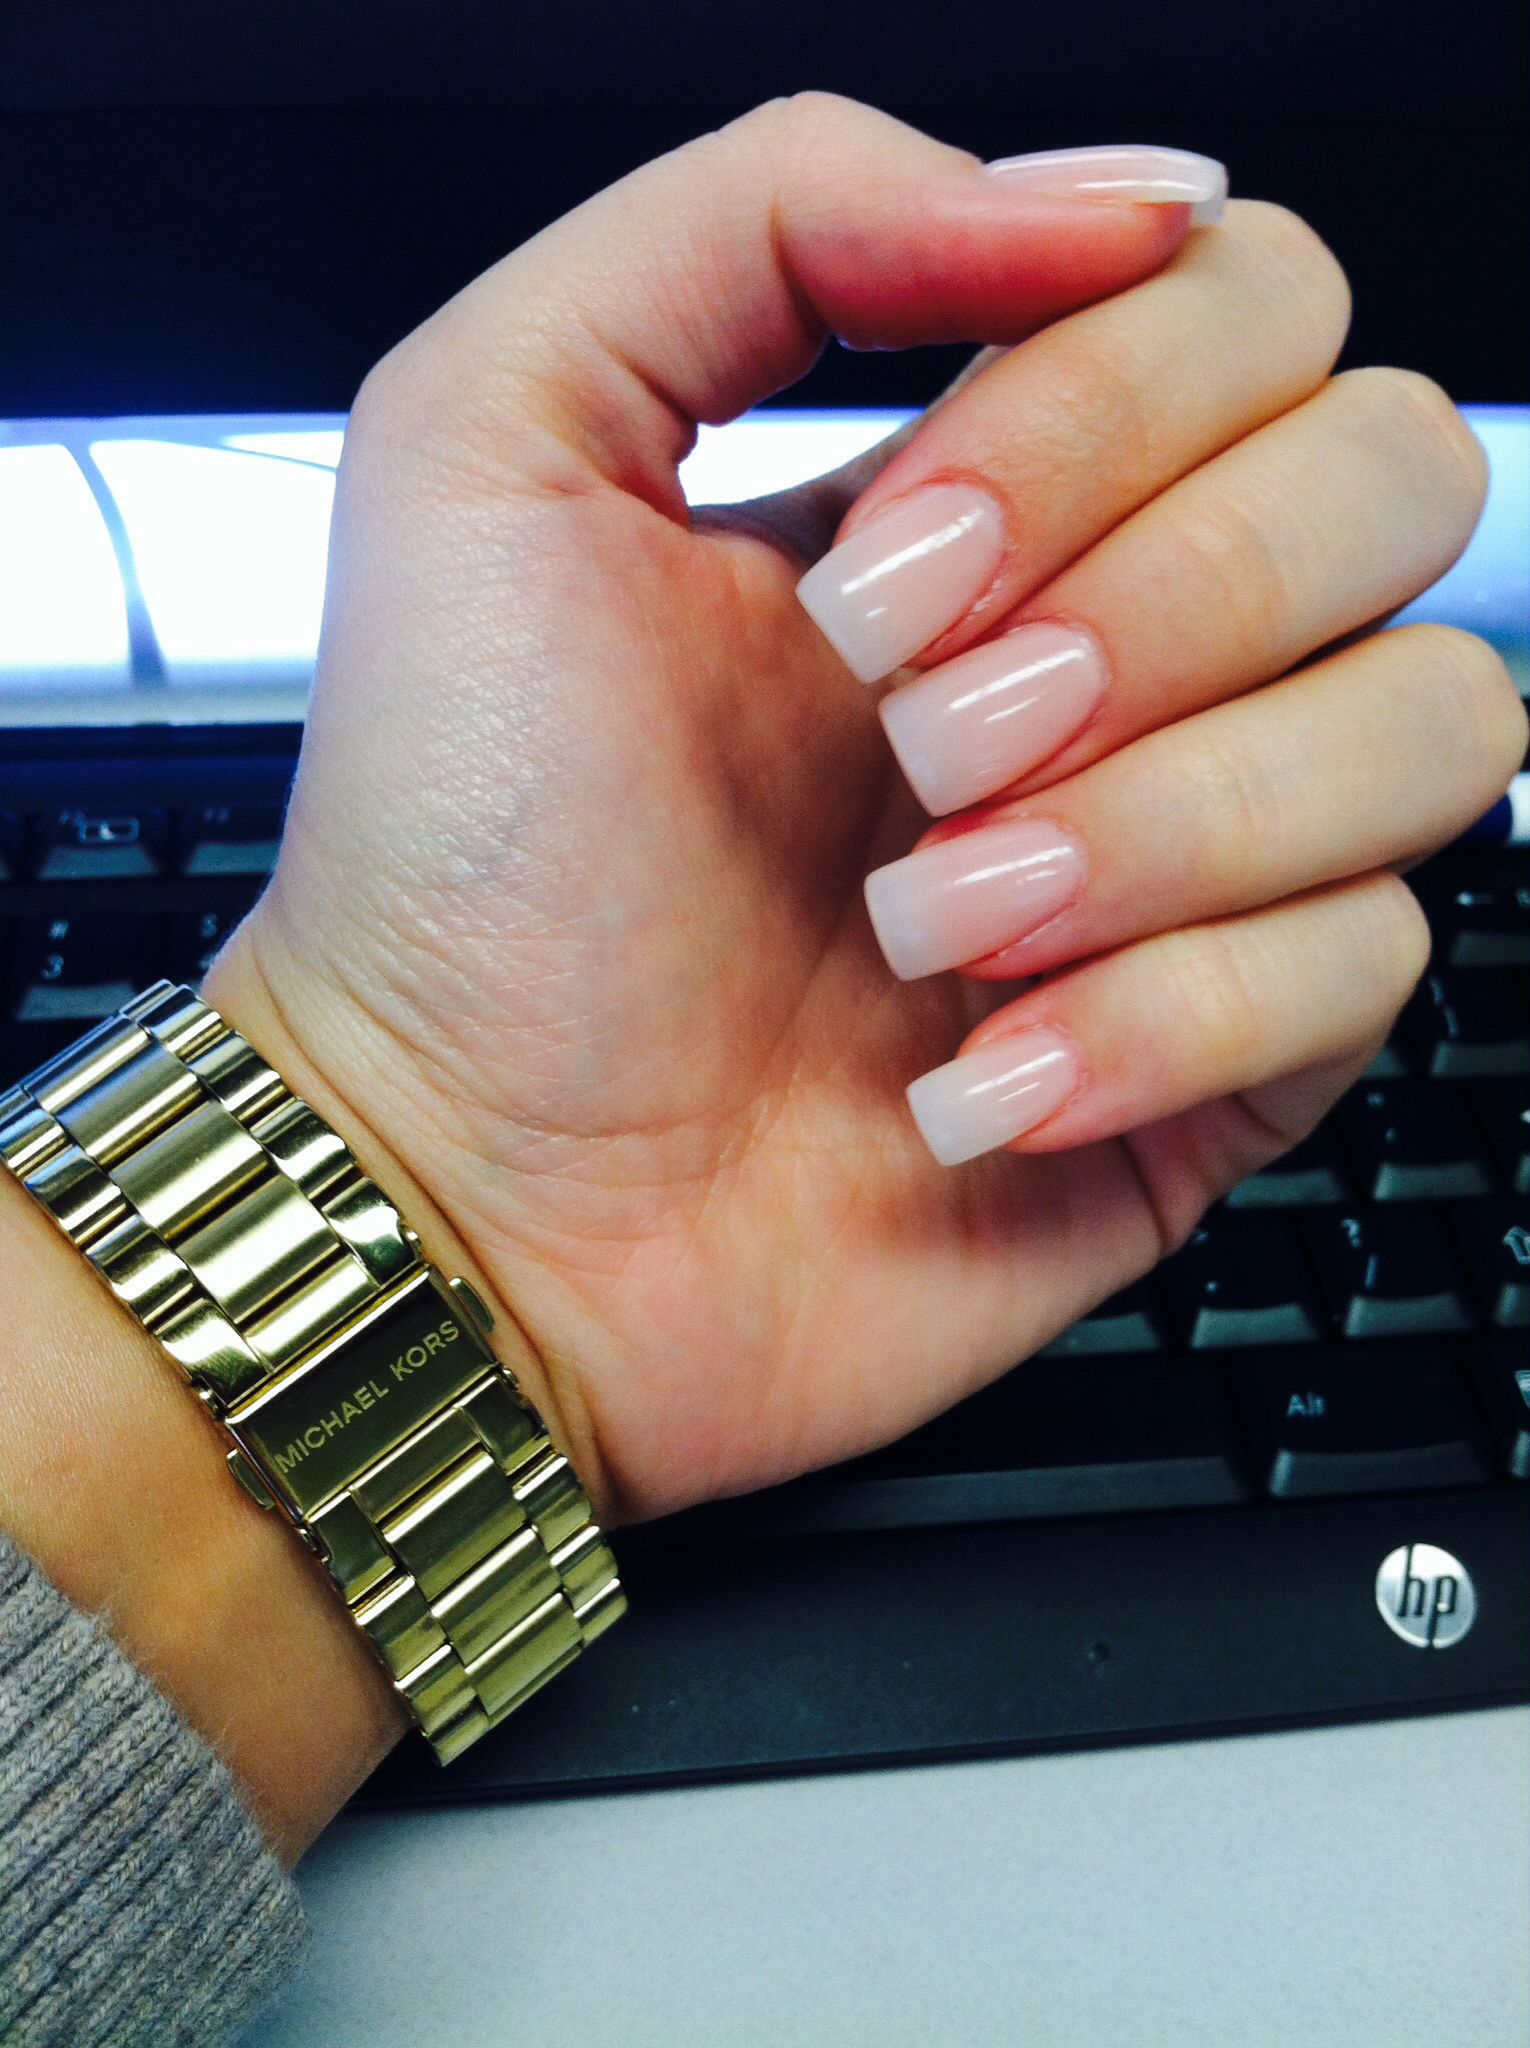 Never Get Acrylics But I Was In The Mood For Something Different Neutrals Love Mkwatch Manicura De Unas Manicura Manicuras